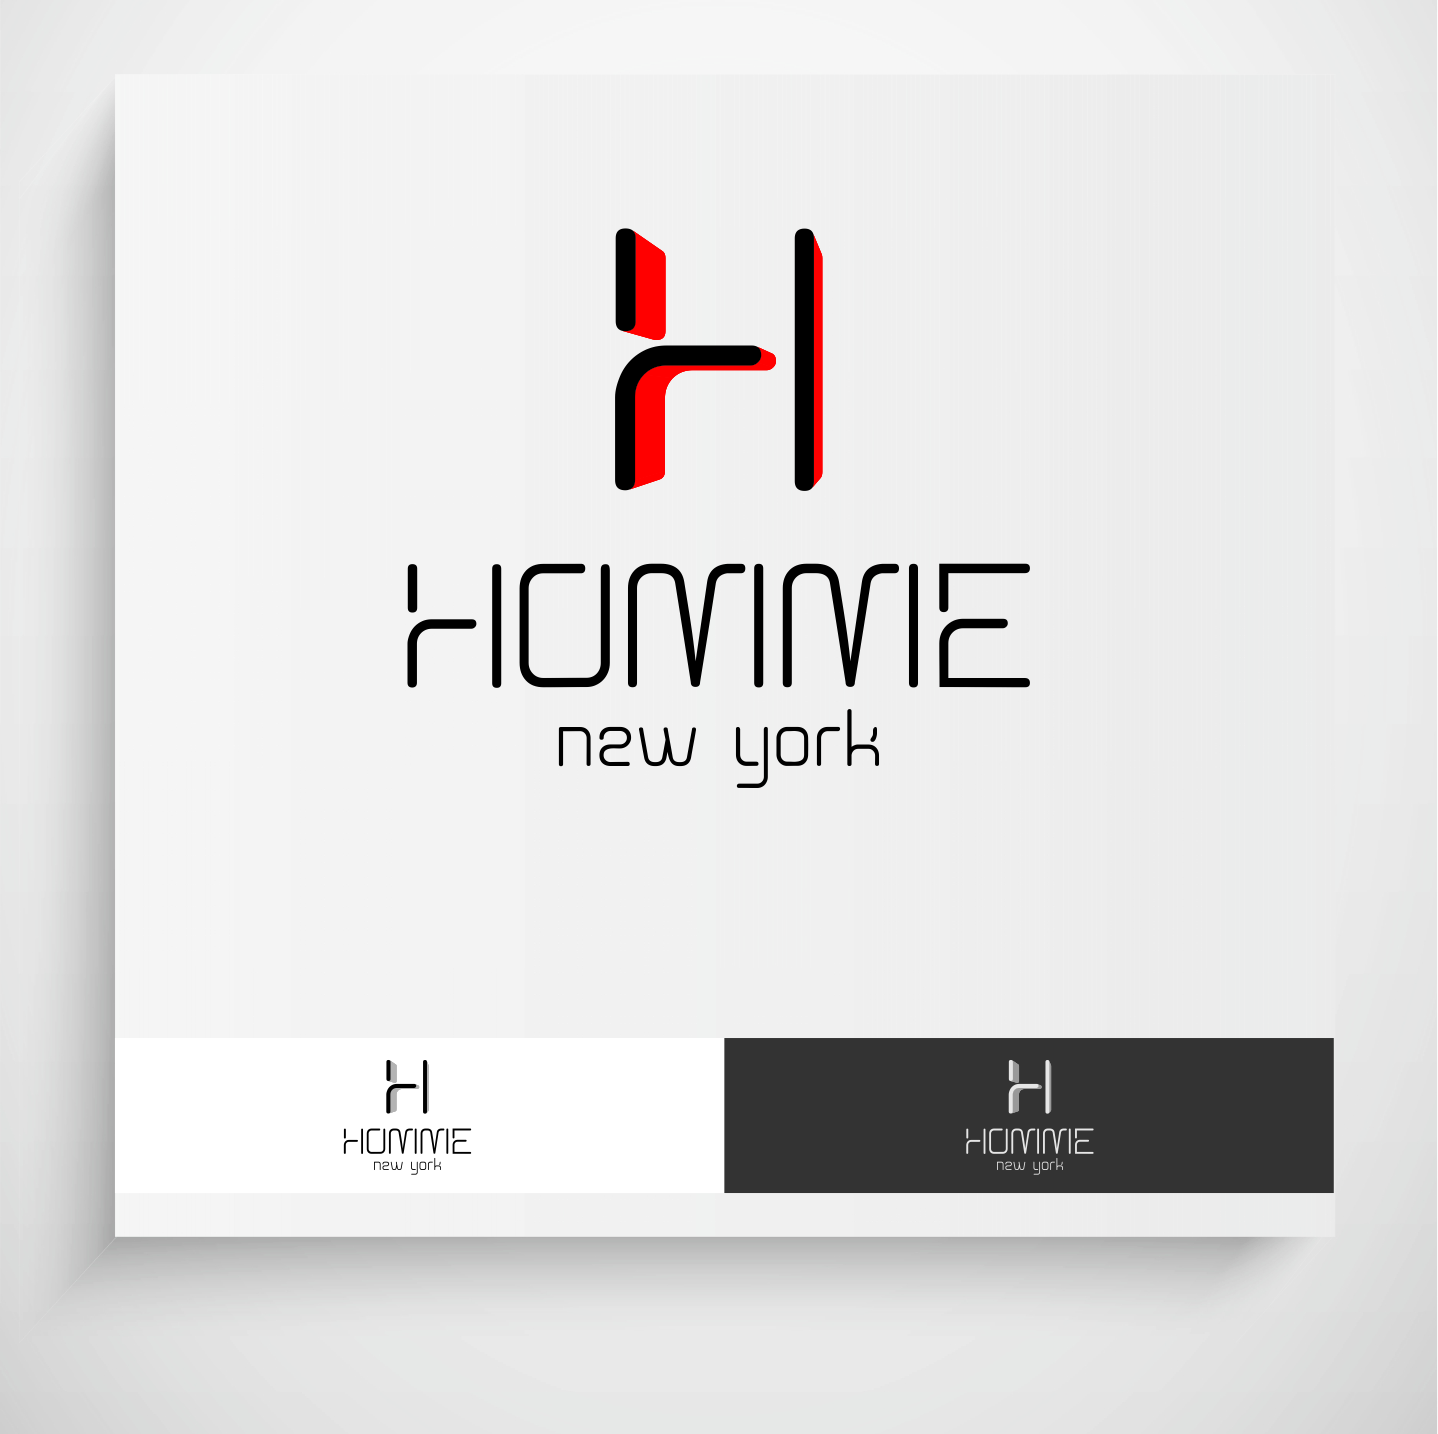 Logo Design by Krzysztof Mokanek - Entry No. 94 in the Logo Design Contest Artistic Logo Design for HOMME | NEW YORK.